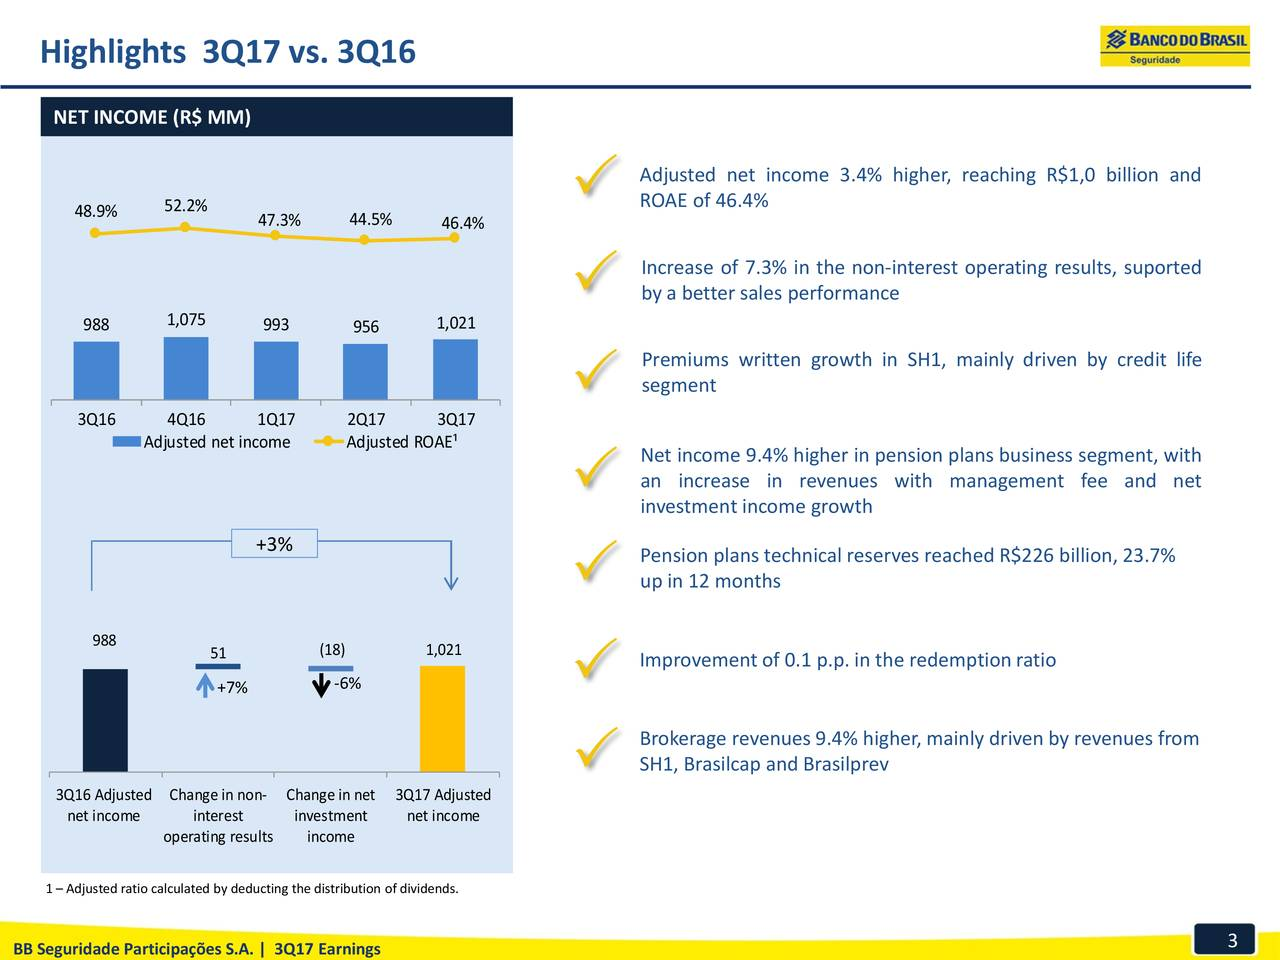 NET INCOME (R$ MM) Adjusted net income 3.4% higher, reaching R$1,0 billion and 52.2% ROAE of 46.4% 48.9% 47.3% 44.5% 46.4% Increase of 7.3% in the non-interest operating results, suported by a better sales performance 1,075 1,021 988 993 956 Premiums written growth in SH1, mainly driven by credit life segment 3Q16 4Q16 1Q17 2Q17 3Q17 Adjusted net income Adjusted ROAE¹ Net income 9.4% higher in pension plans business segment, with an increase in revenues with management fee and net investment income growth +3% Pension plans technical reserves reached R$226 billion, 23.7% up in 12 months 988 51 (18) 1,021 Improvement of 0.1 p.p. in the redemption ratio +7% -6% Brokerage revenues 9.4% higher, mainly driven by revenues from SH1, Brasilcap and Brasilprev 3Q16 Adjusted Change in non- Change in net 3Q17 Adjusted net income interest investment net income operating resultsincome 1 – Adjusted ratio calculated by deducting the distribution of dividends. 3